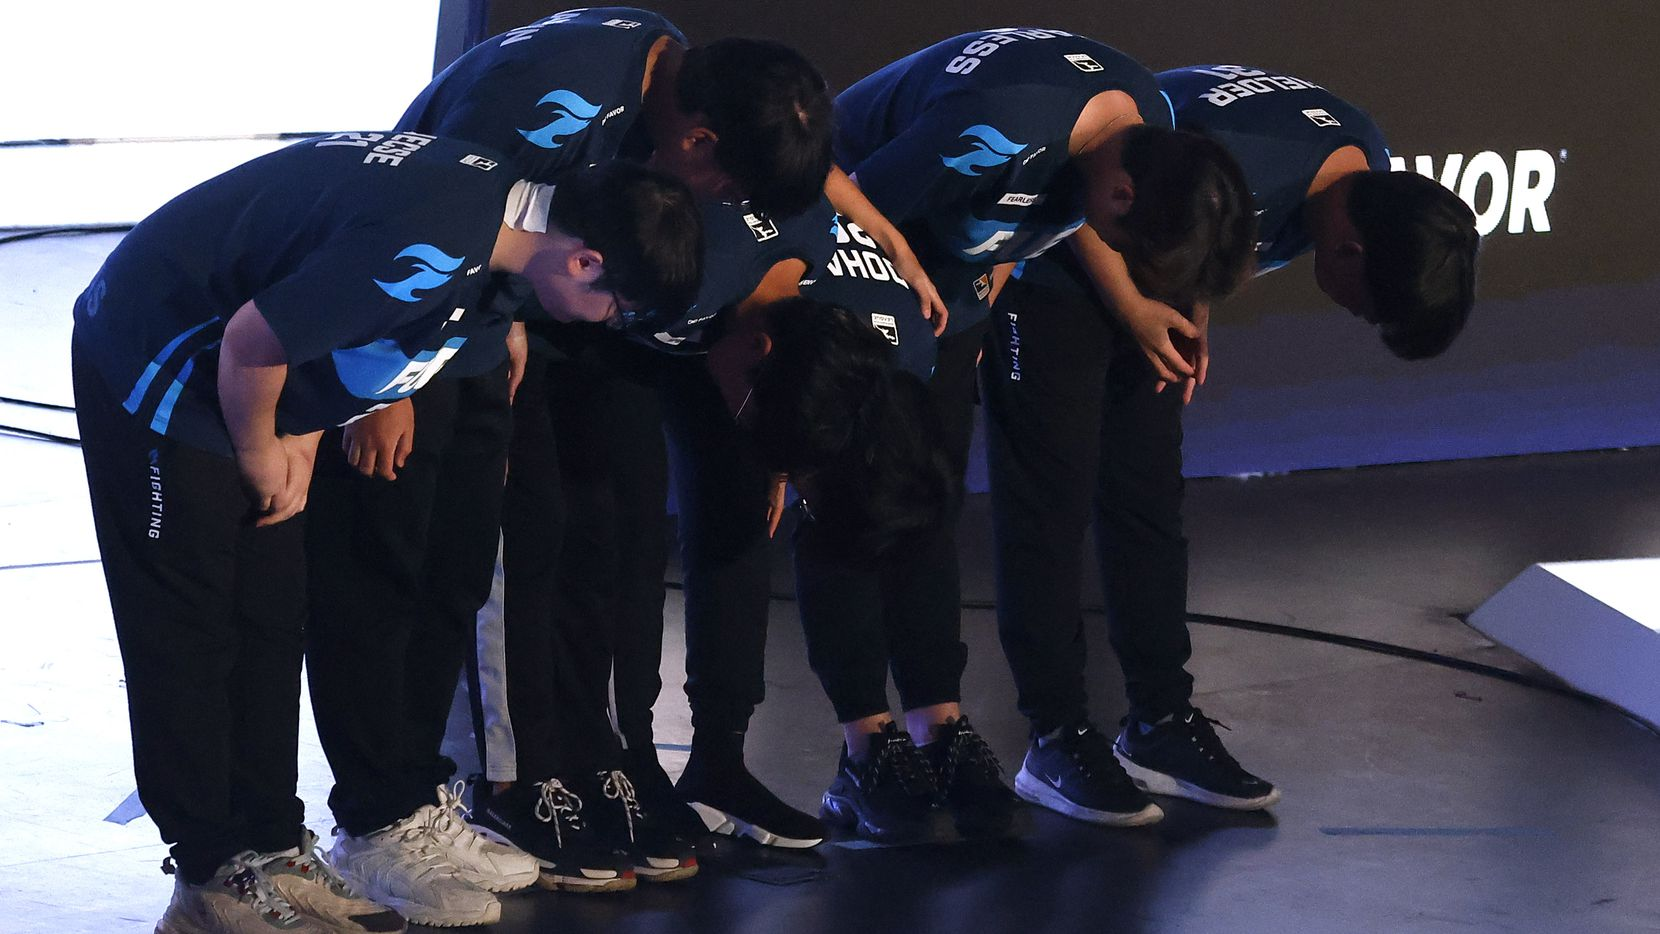 The Dallas Fuel team bows to their fans after defeating the Houston Outlaws in their Overwatch League match at Esports Stadium Arlington Friday, July 9, 2021. The Fuel defeated Houston in The Battle for Texas, 3-0. It was the first in-person live competition for fans in over a year. Houston competed from their hometown.